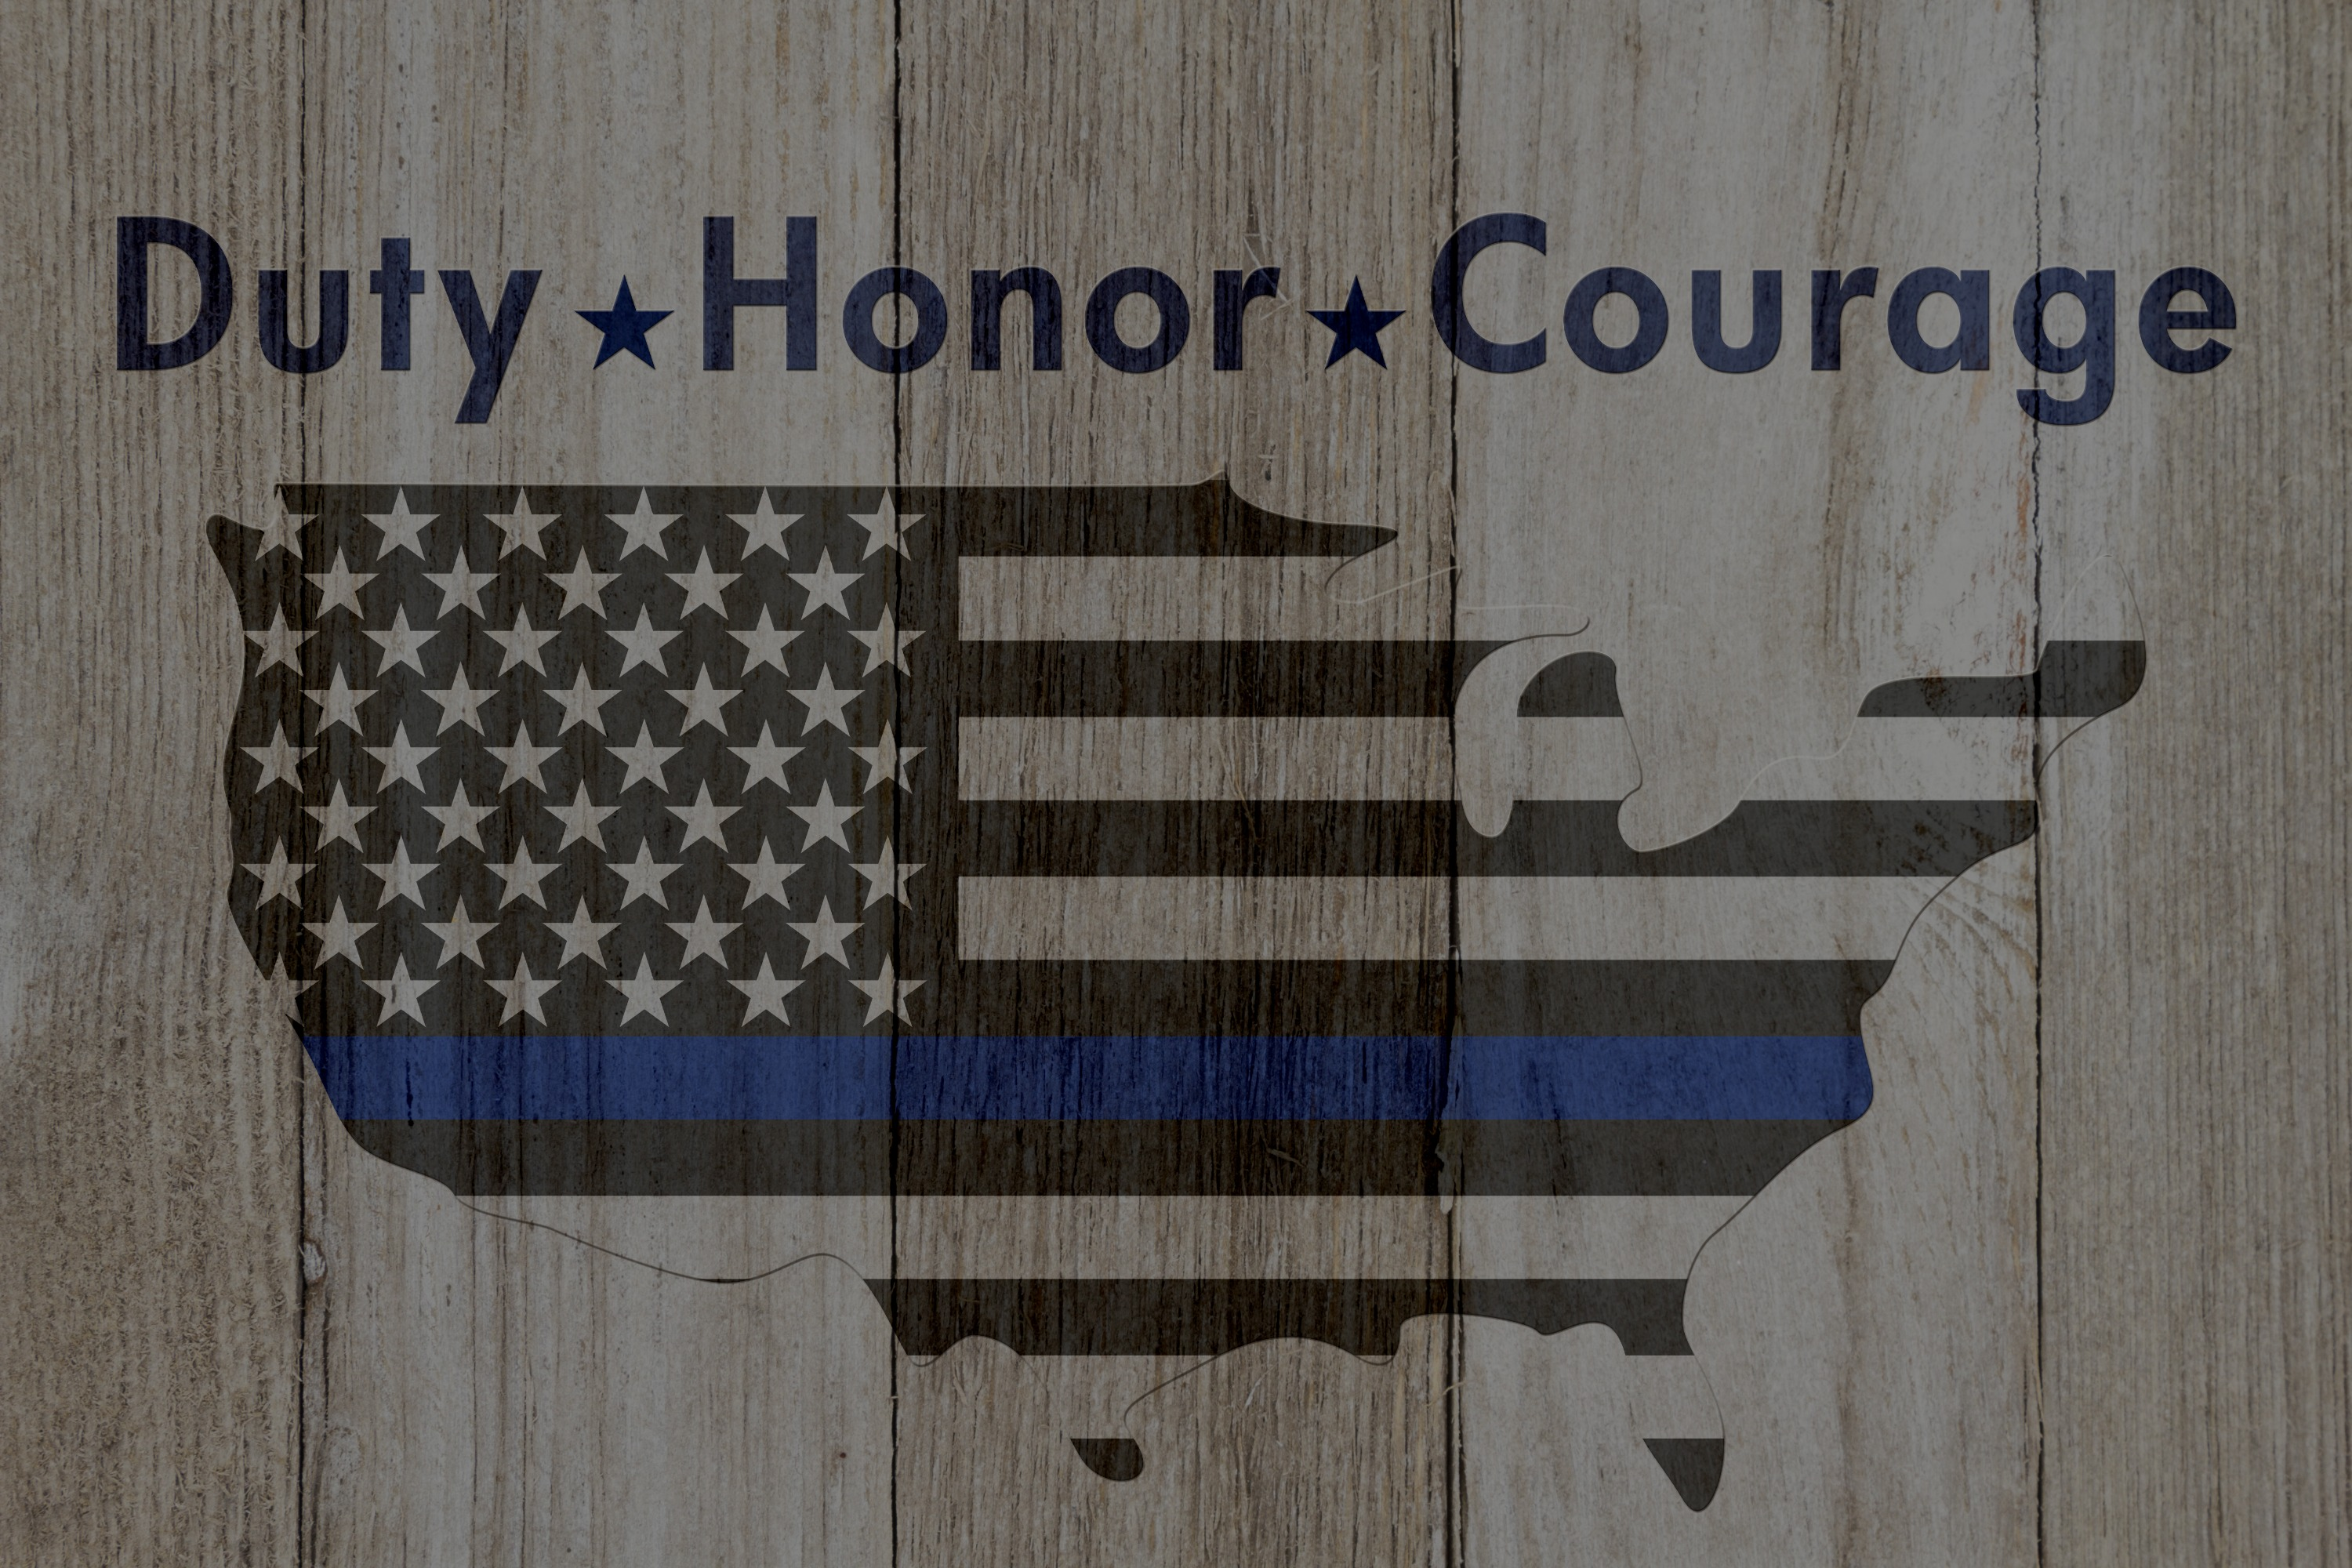 Duty%20Honor%20and%20Courage%20message%2